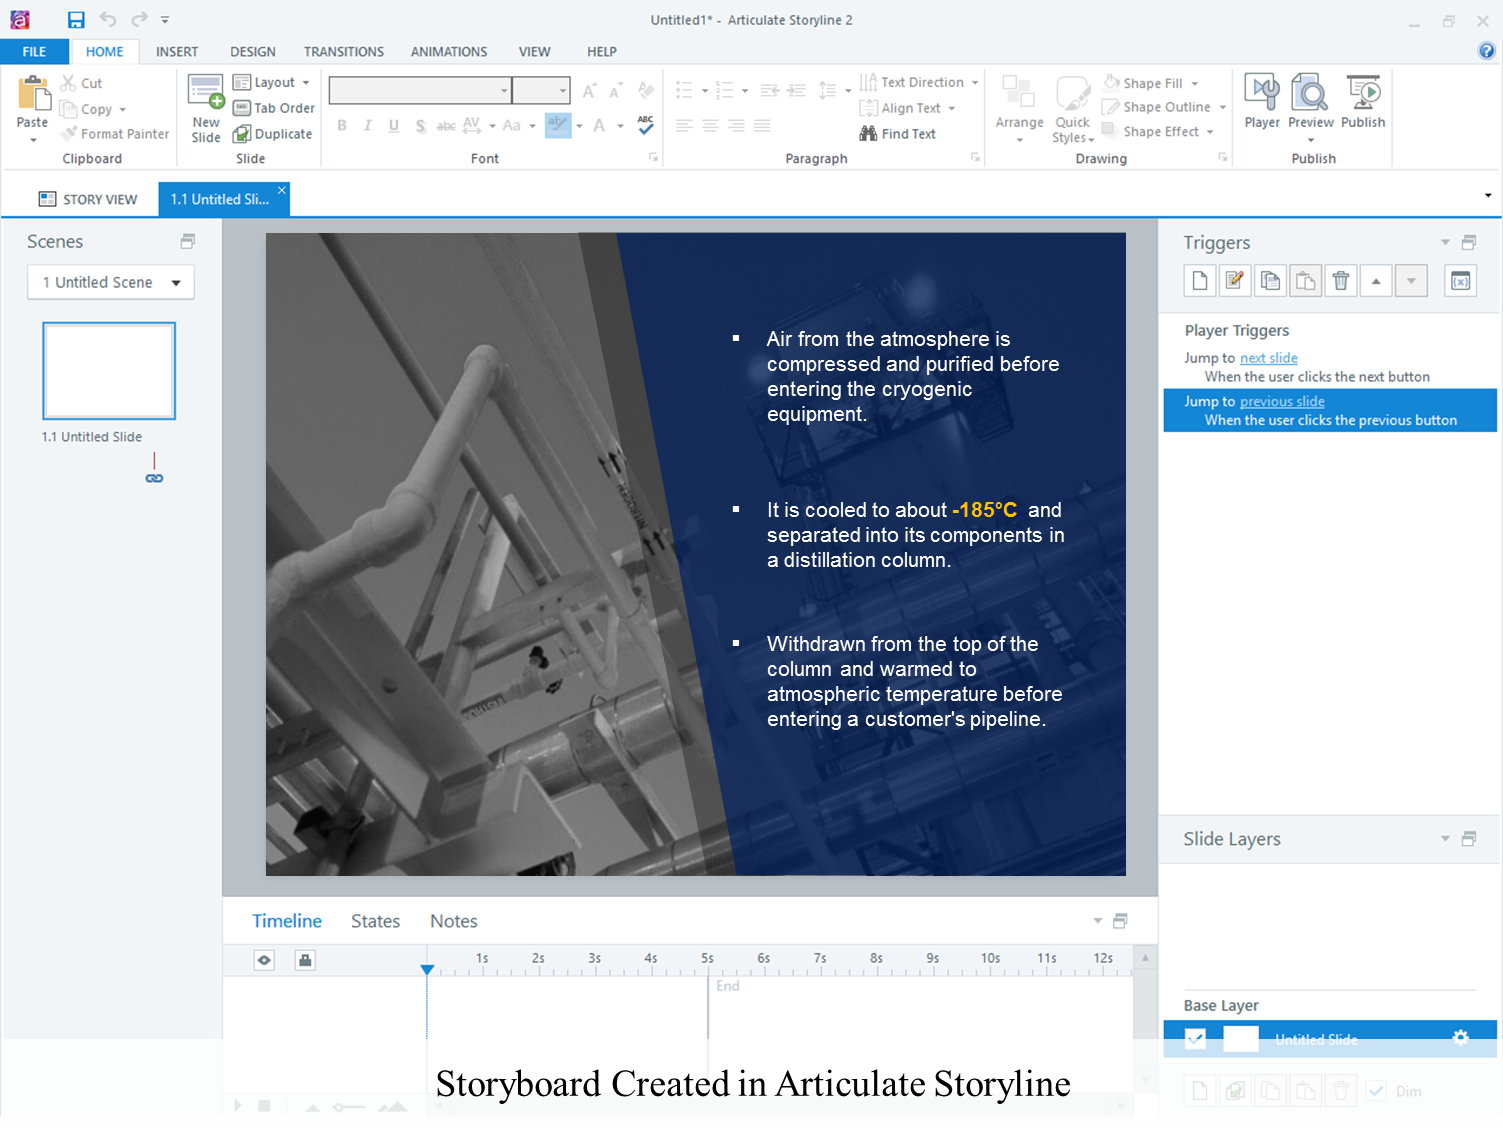 Storyboard created in articulate storyline